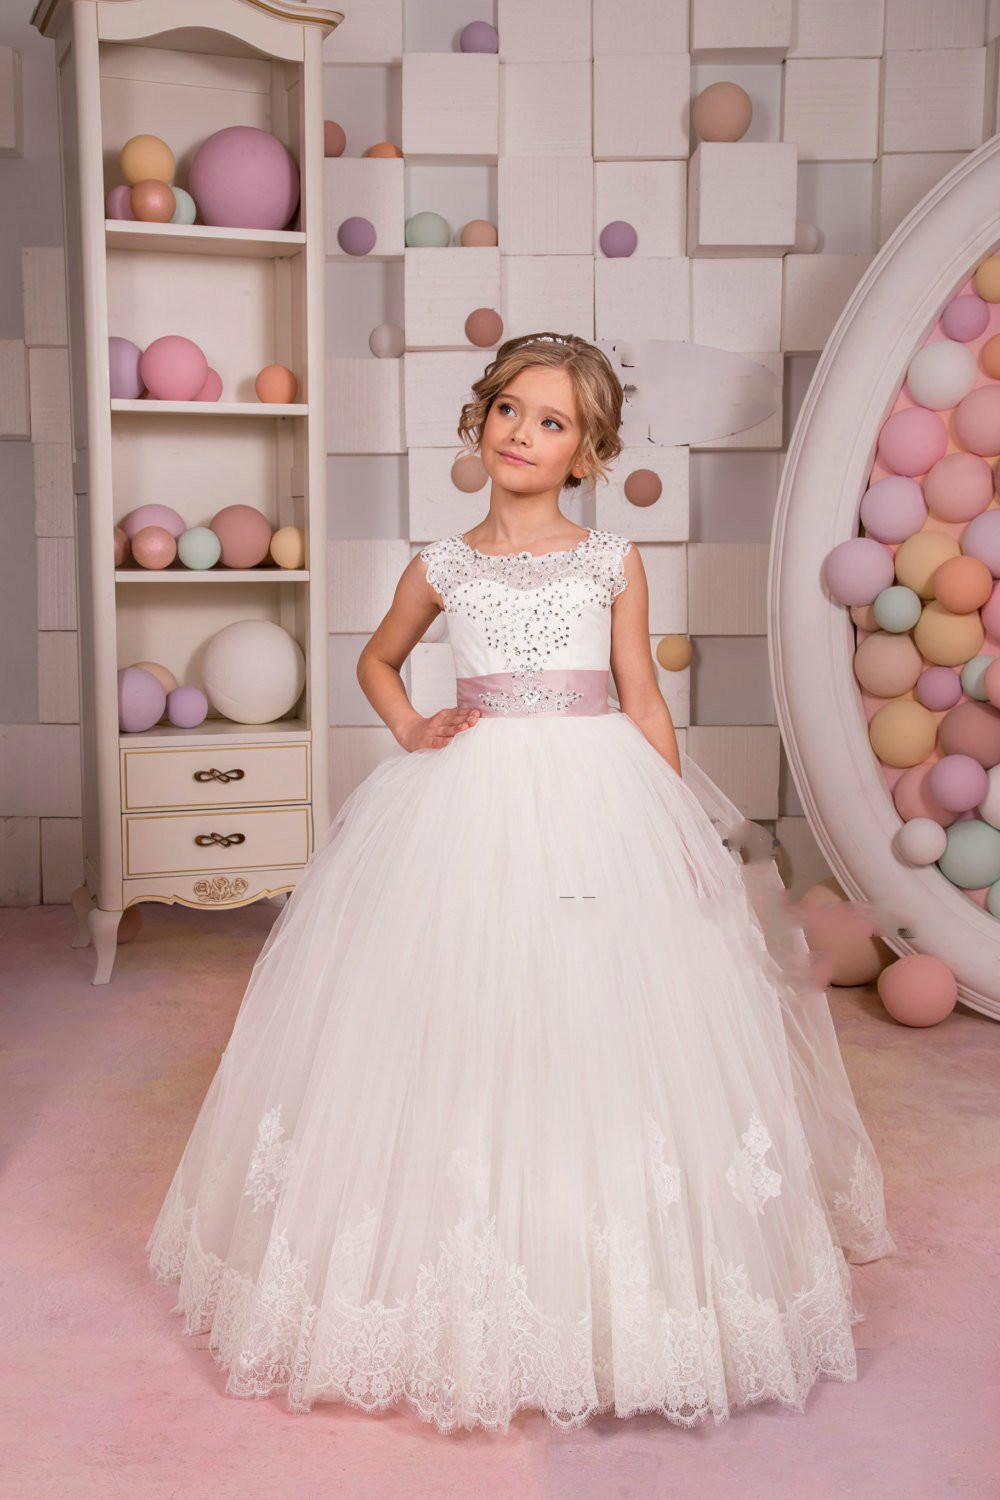 78d996c864844 White Ivory Flower Girl Dress Junior Bridesmaid Holiday Birthday Wedding  Party Ivory Lace Tulle Little Girl Dress Kids Formal Occasion Champagne  Colored ...